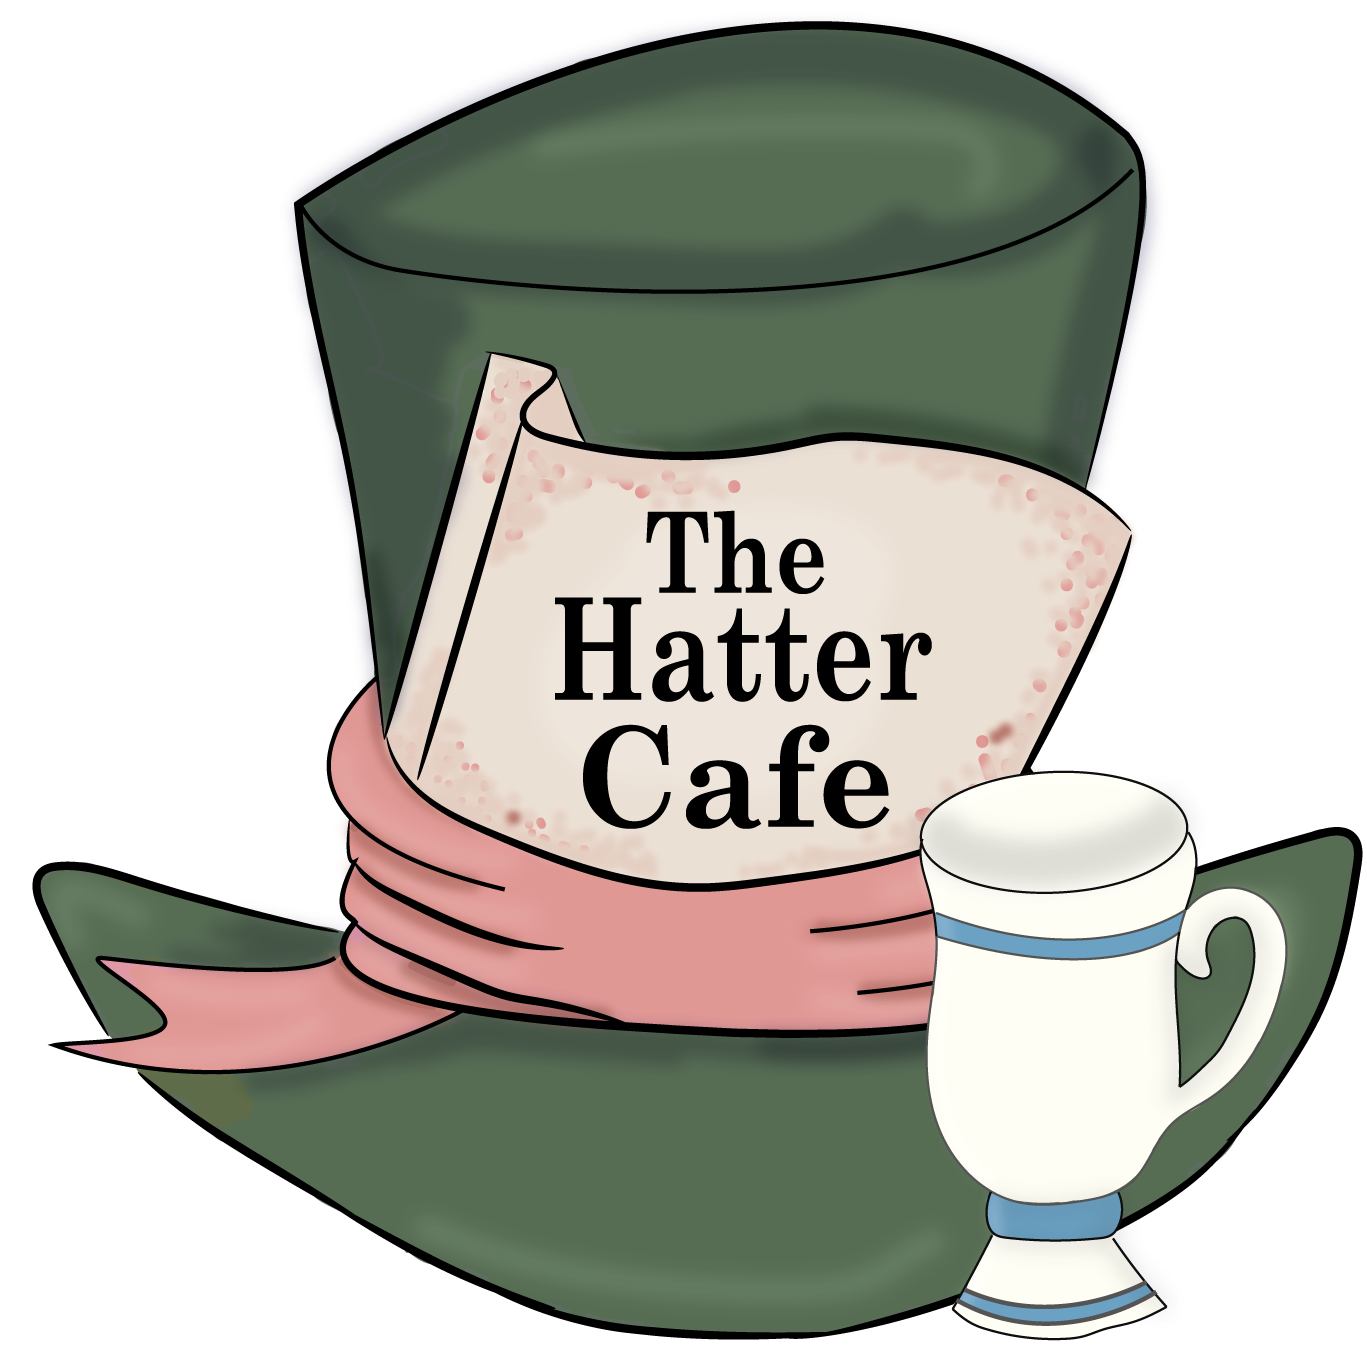 The Hatter Cafe